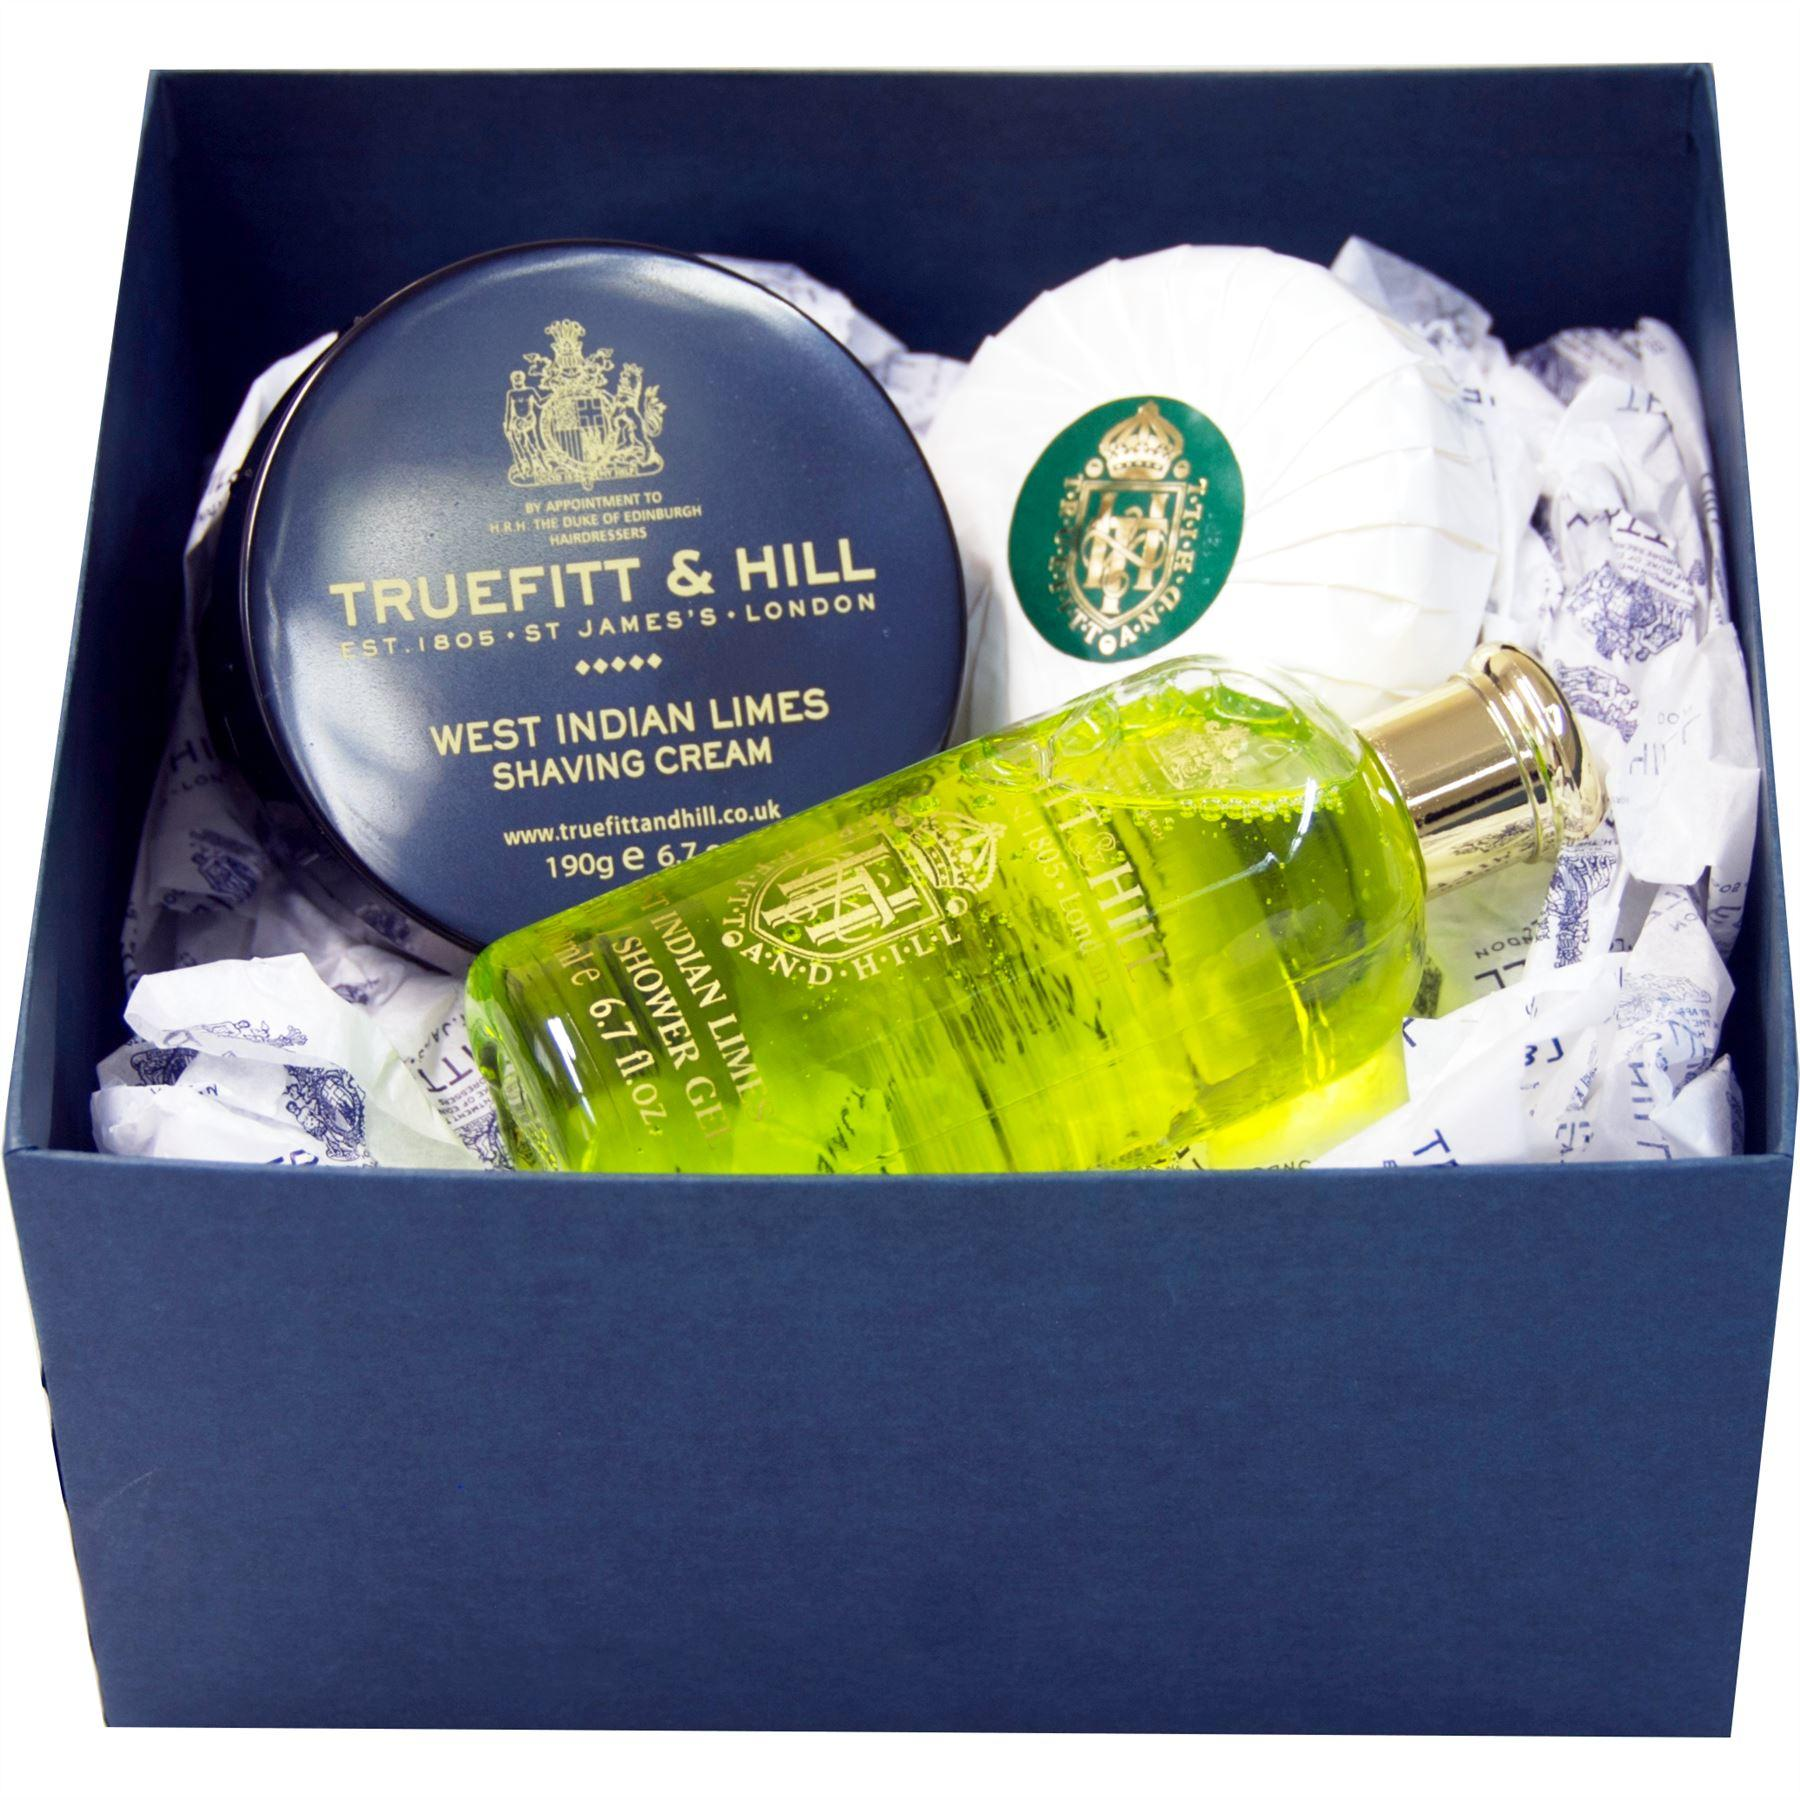 Truefitt & Hill West Indian Limes Bathroom Gift Set (Shaving Cream, Round Soap & Shower Gel)